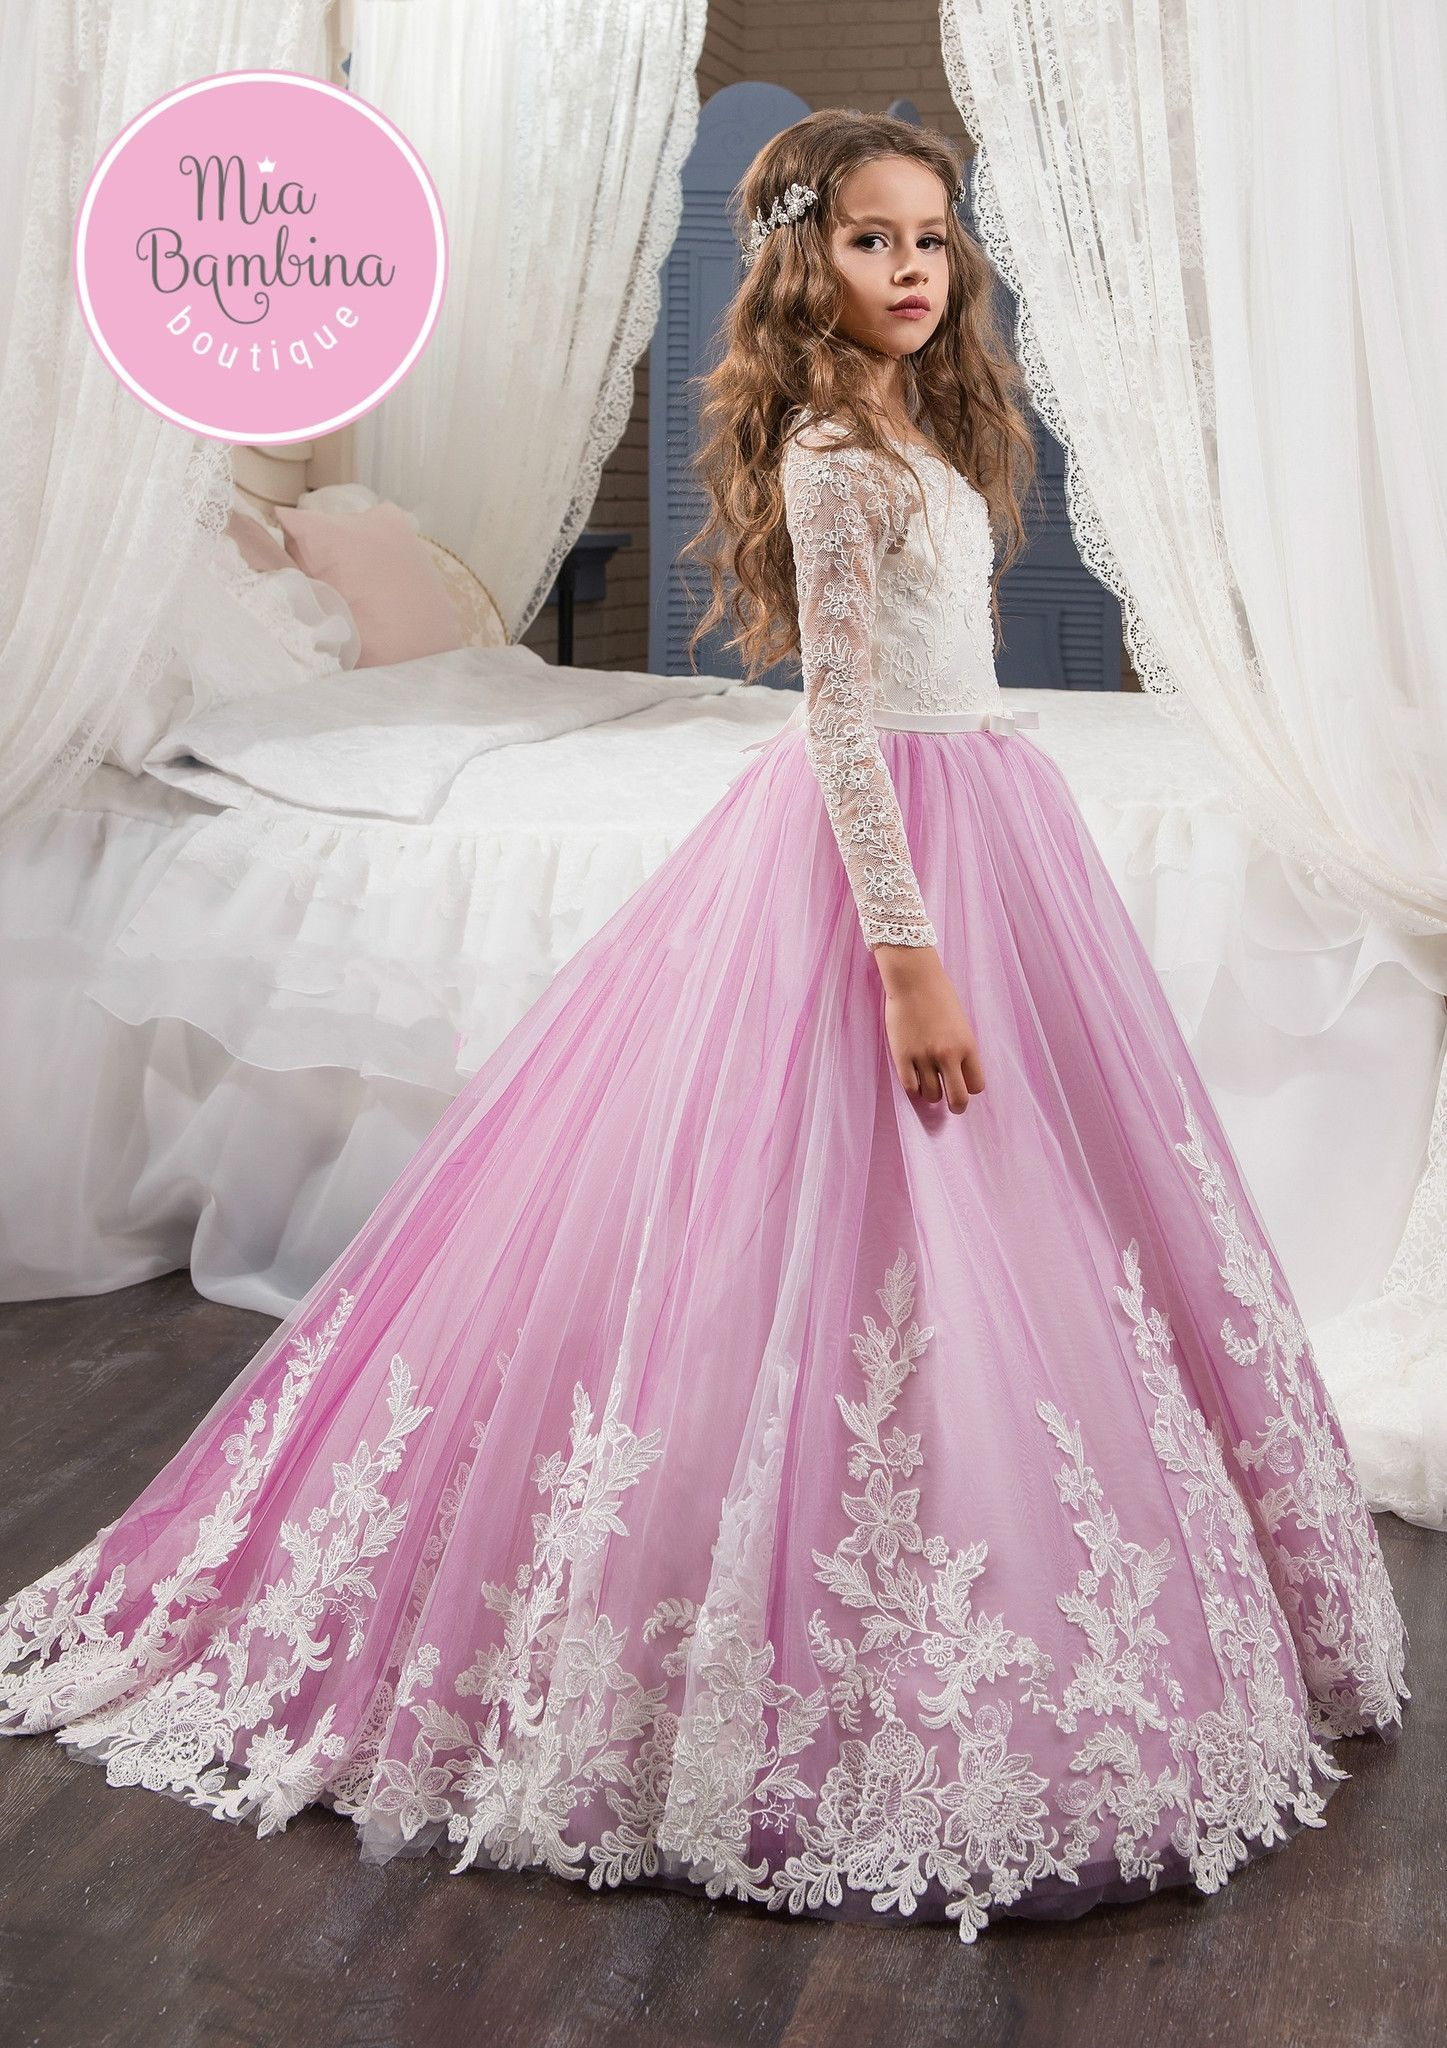 55d4a330b6 The breathtaking Atlanta is a Flower Girl ball gown with long lace sleeves  and full tulle skirt of contrasting color. The stunning floral ornaments  decorate ...